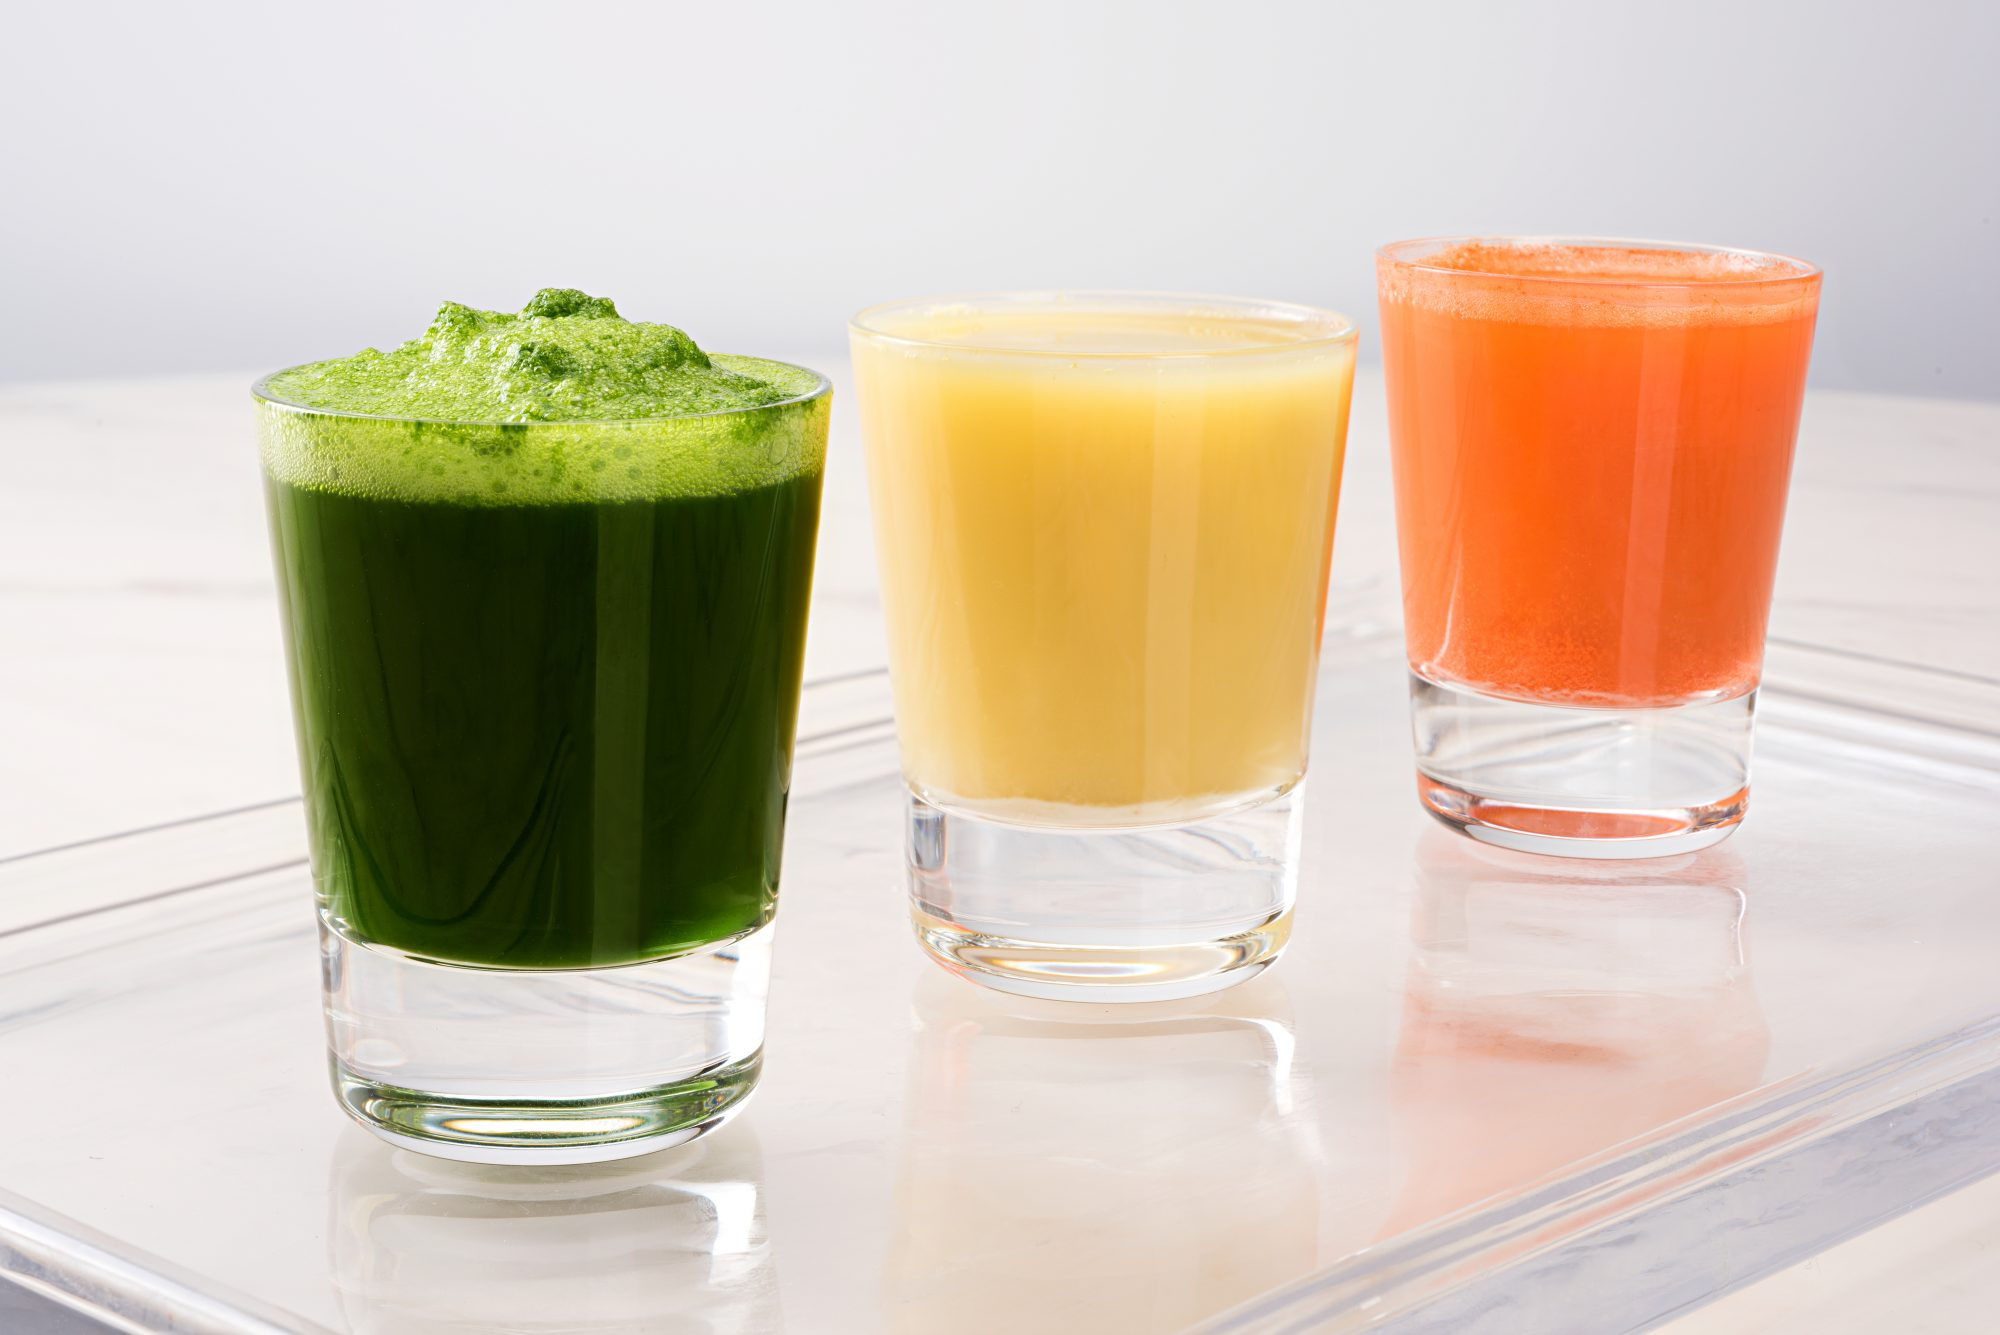 Planning a Detox or Juice Cleanse? 5 Dos and Don'ts